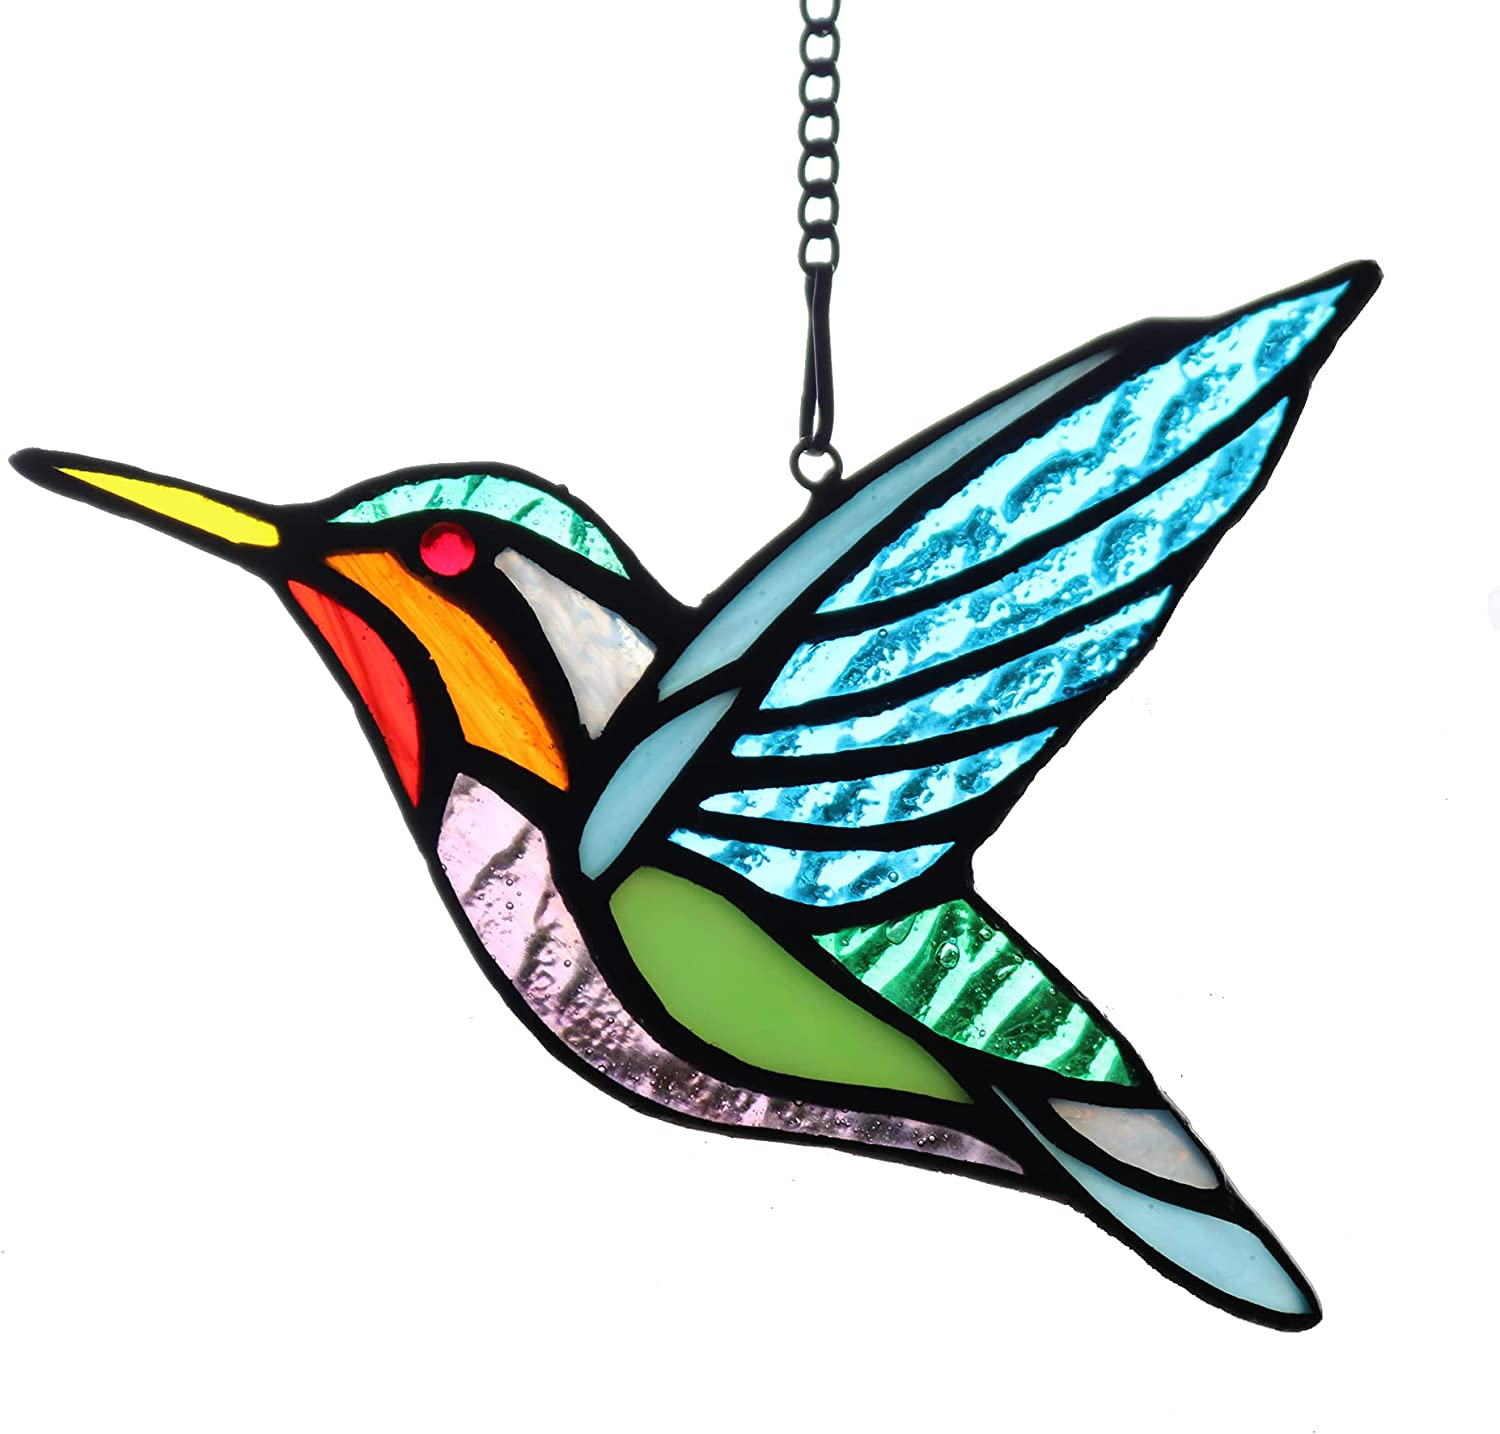 HAOSUM Stained Glass Birds Window Hangings, Stained Glass Bird Decorations,Glass for Window,Home Decor Gifts for Mom,Bird Lovers